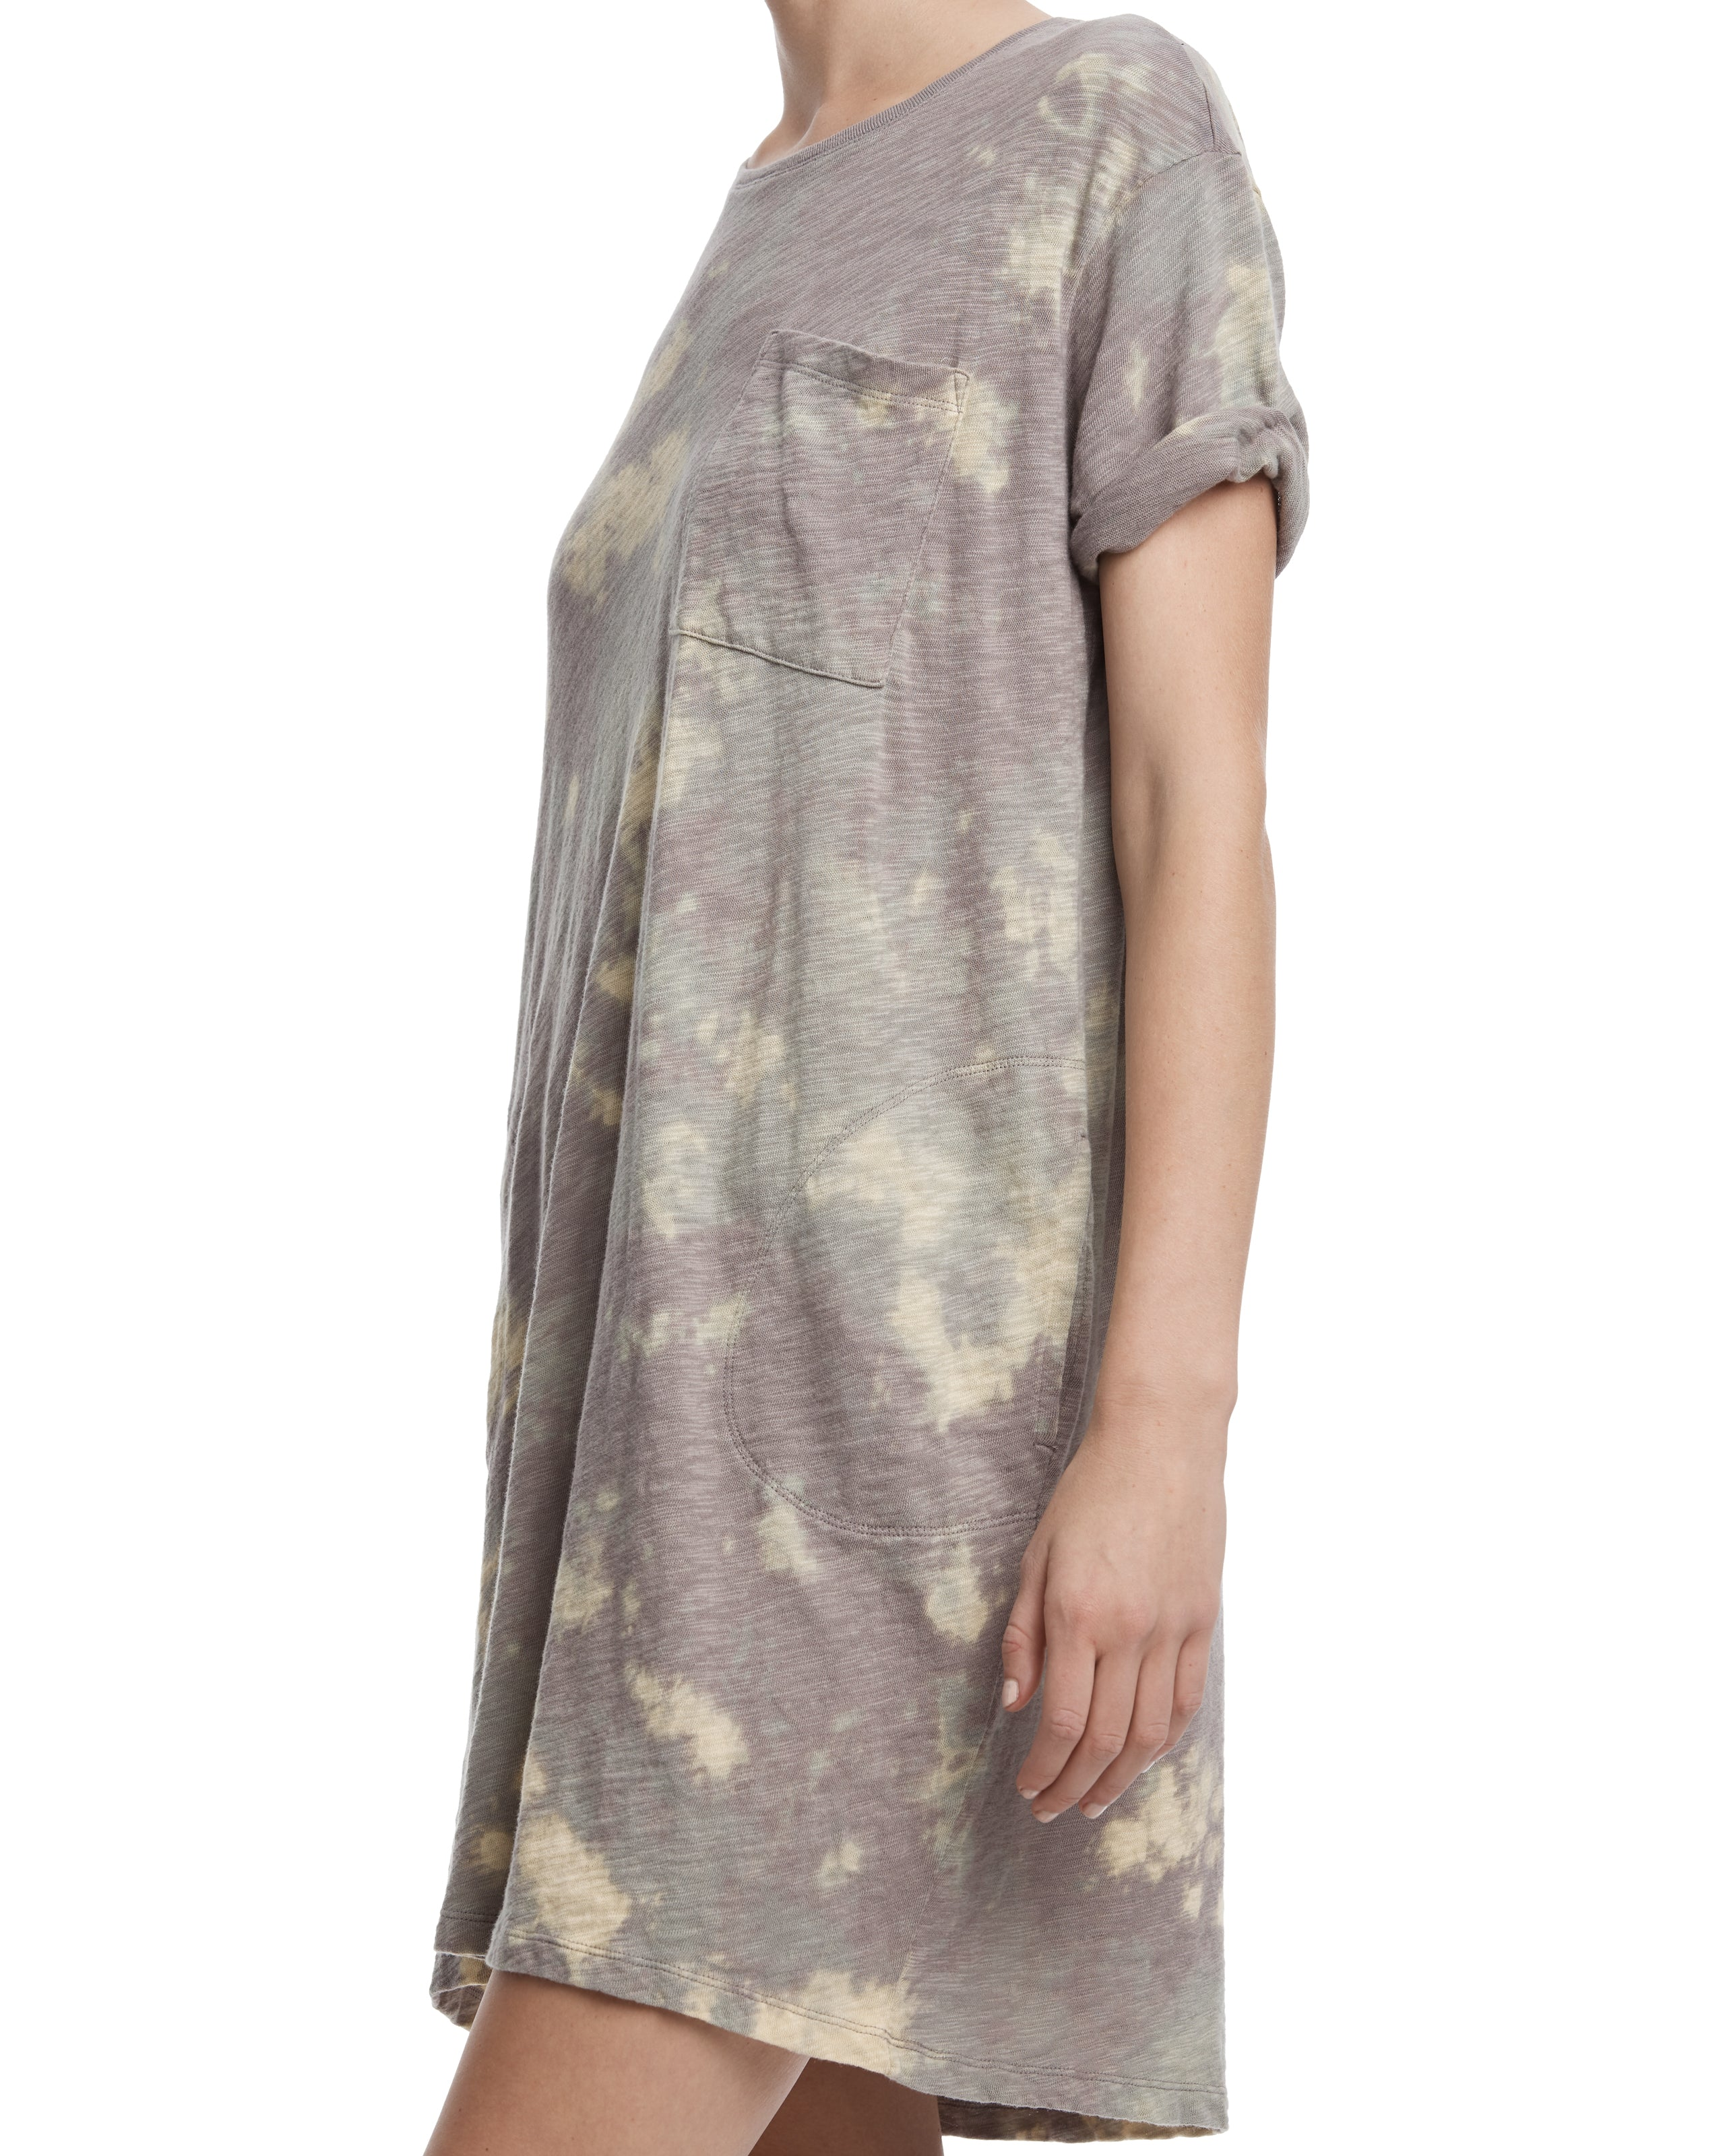 ATM Tie Dye Slub Jersey Boyfriend Dress